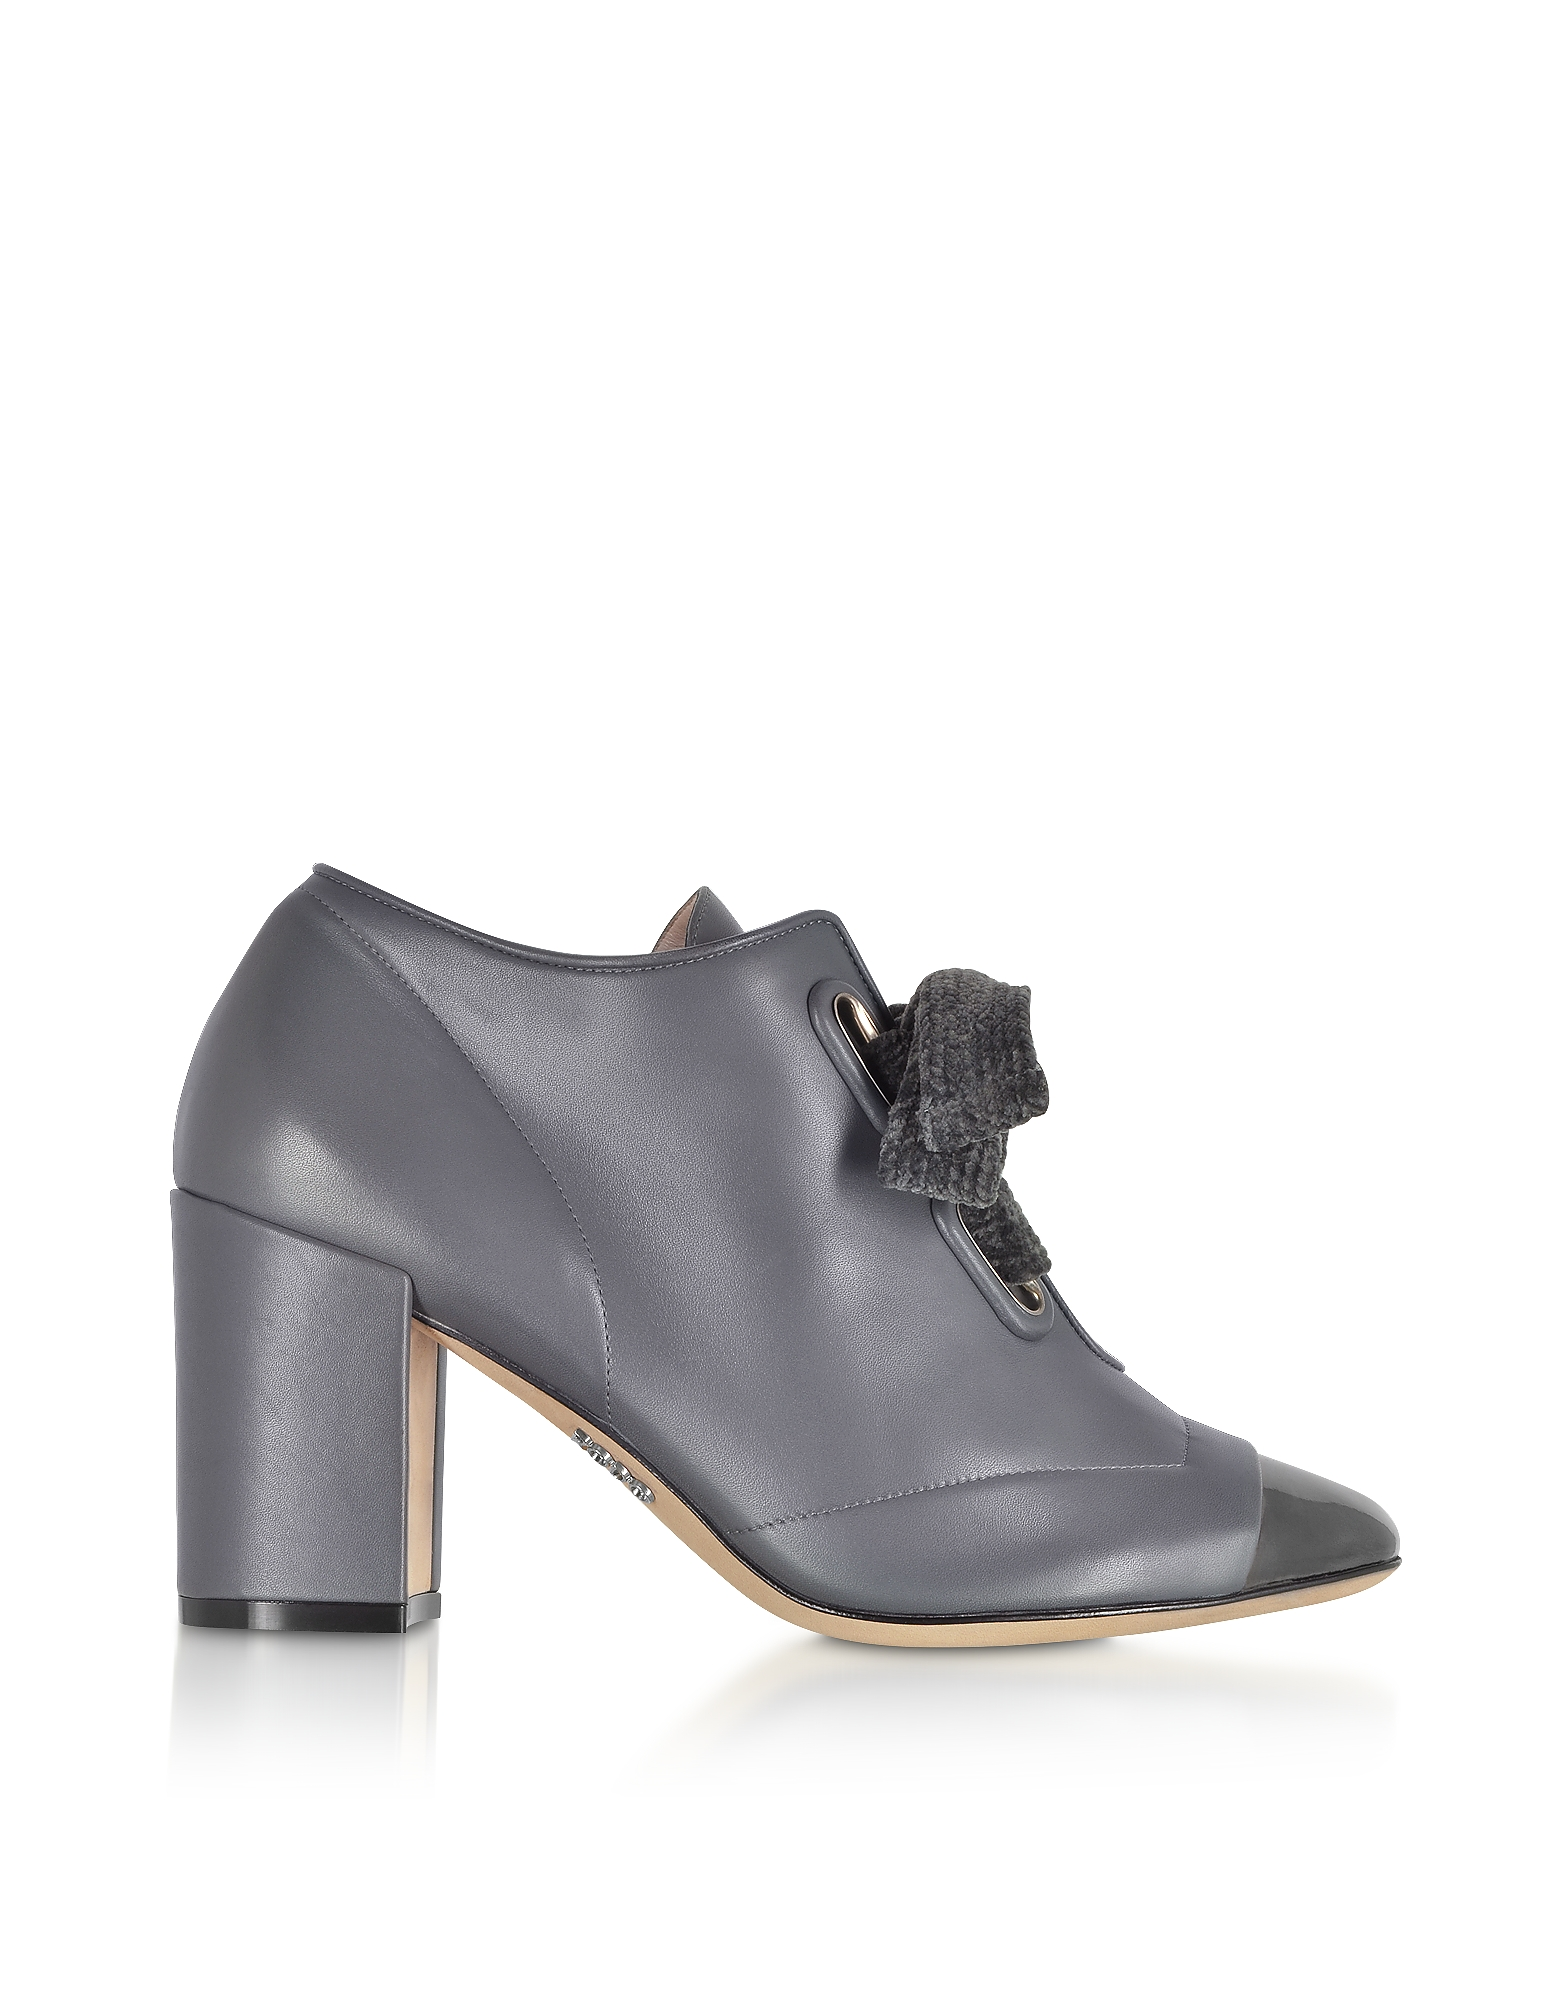 Rodo Shoes, Gray Leather Heel Pumps w/Velvet Bow